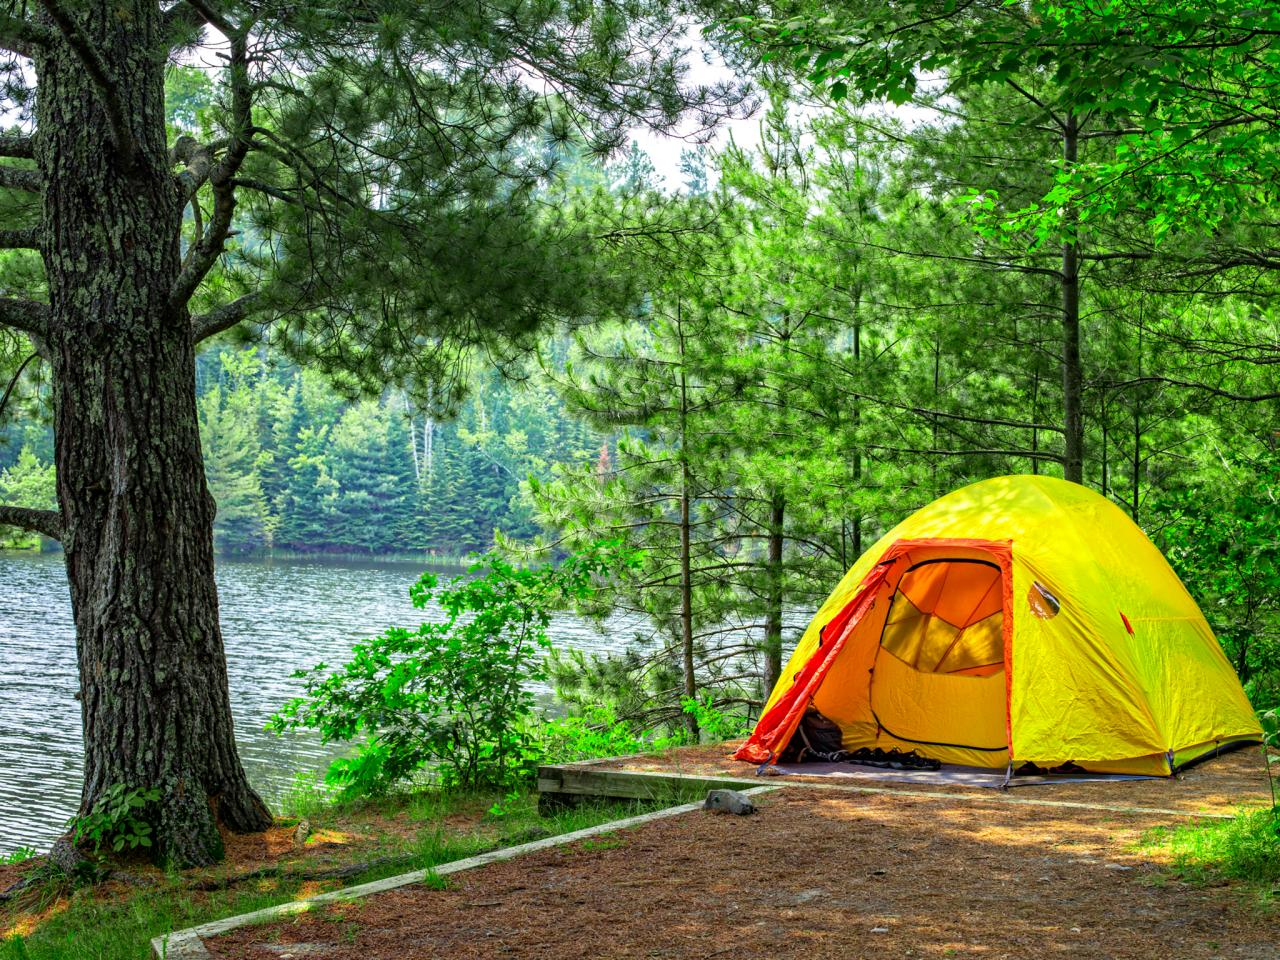 Camping Backgrounds on Wallpapers Vista